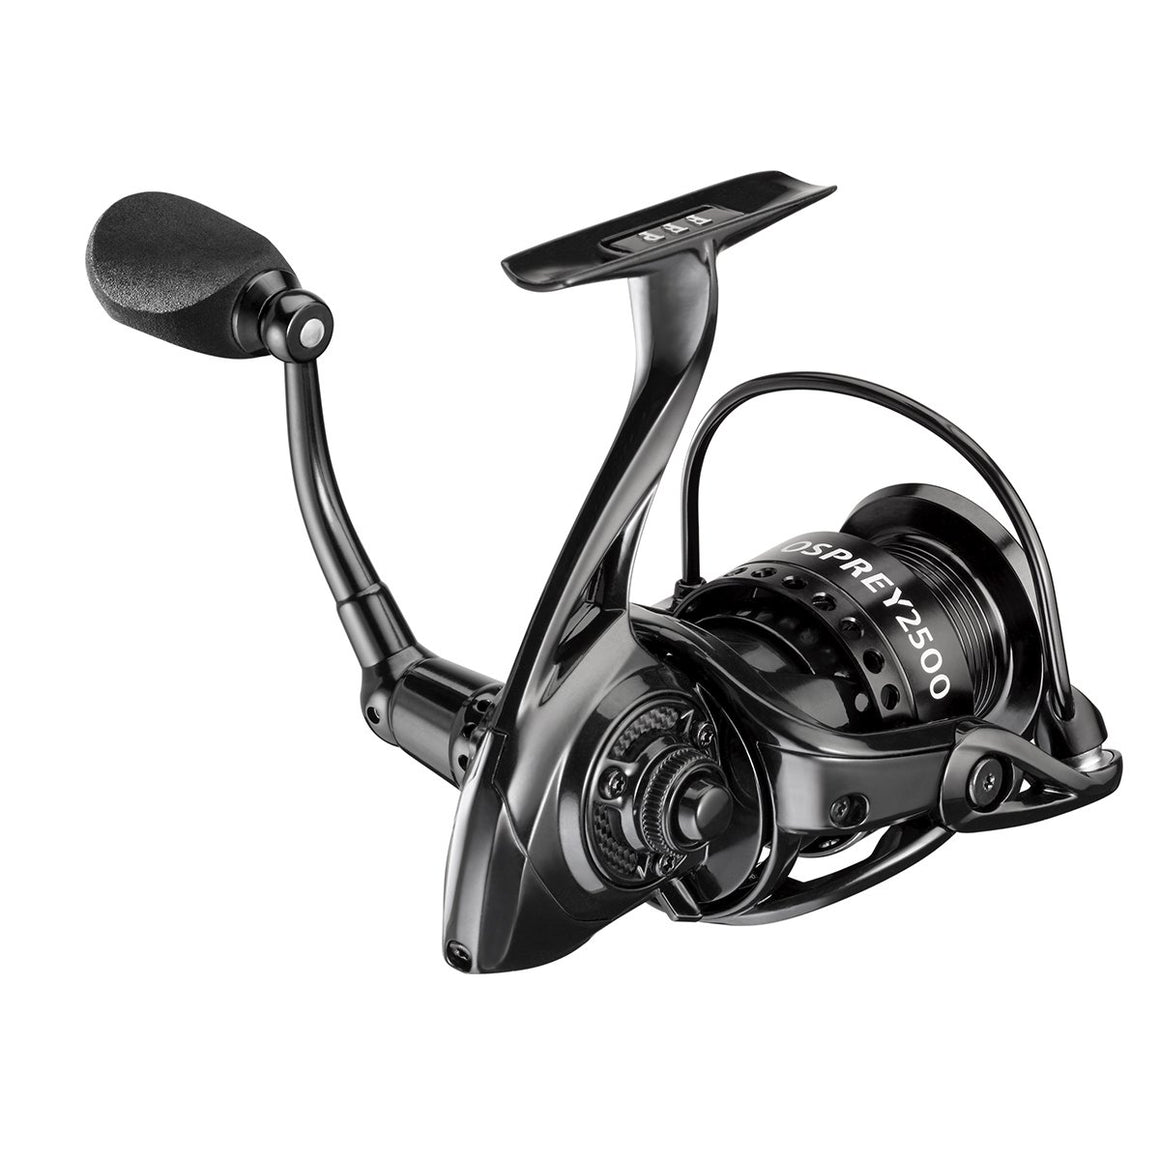 Florida Fishing Products Osprey 2500 Spinning Reel